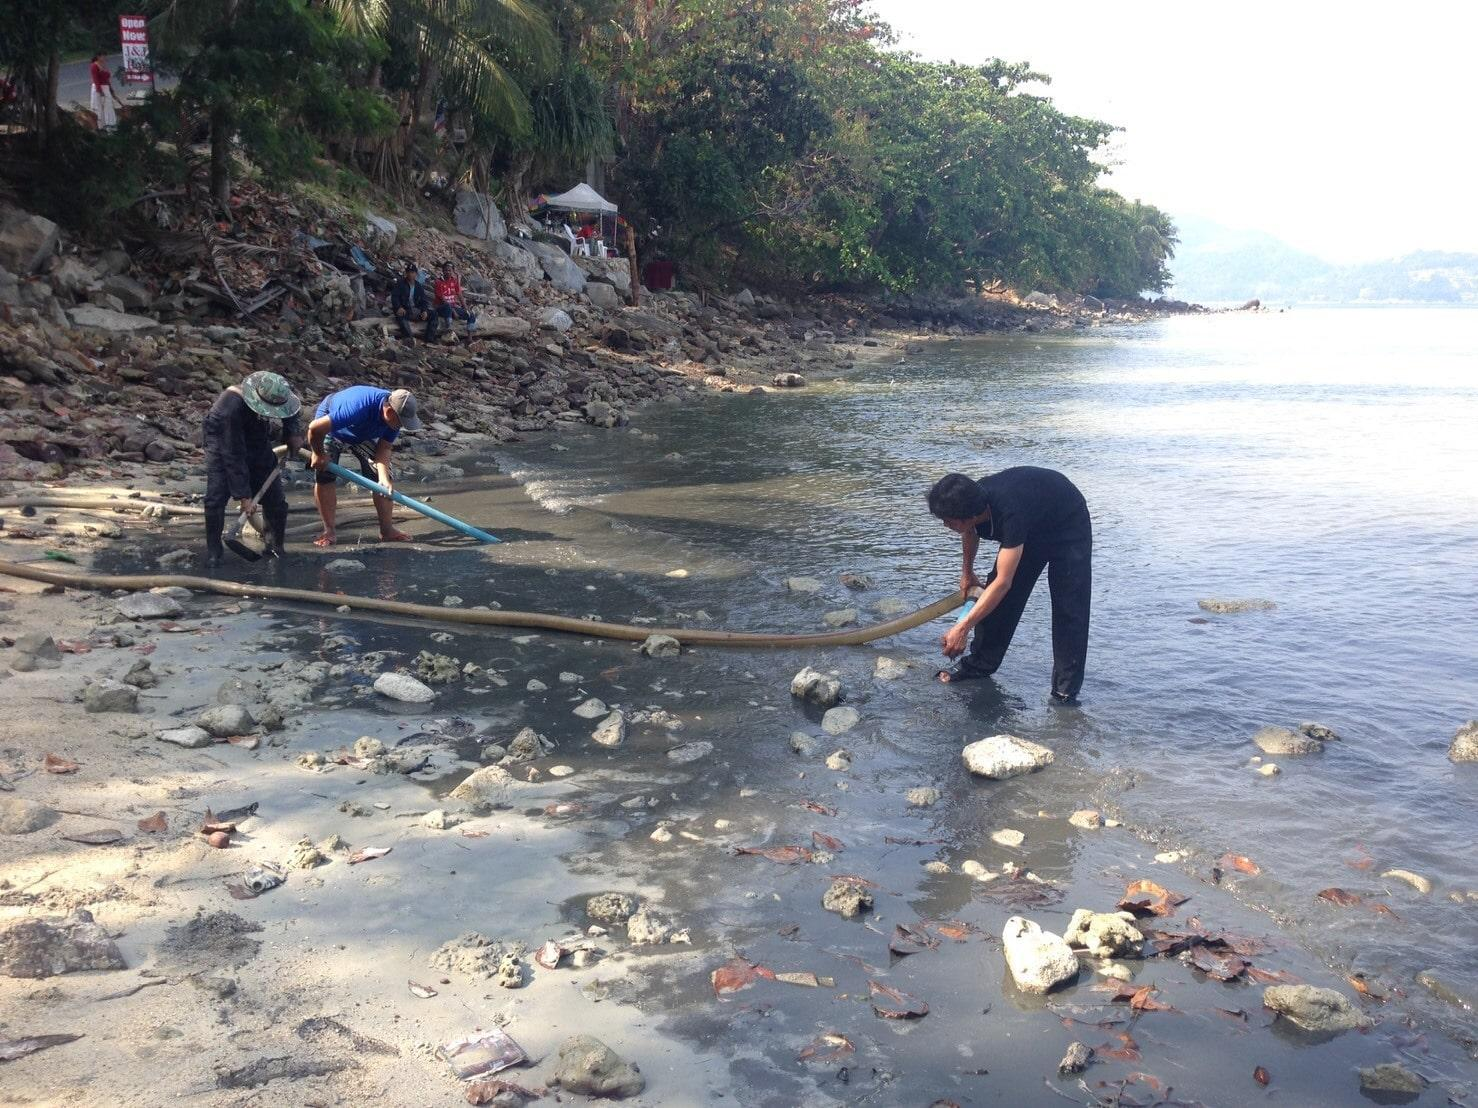 Patong & Krabi wastewater 'being tackled' | The Thaiger